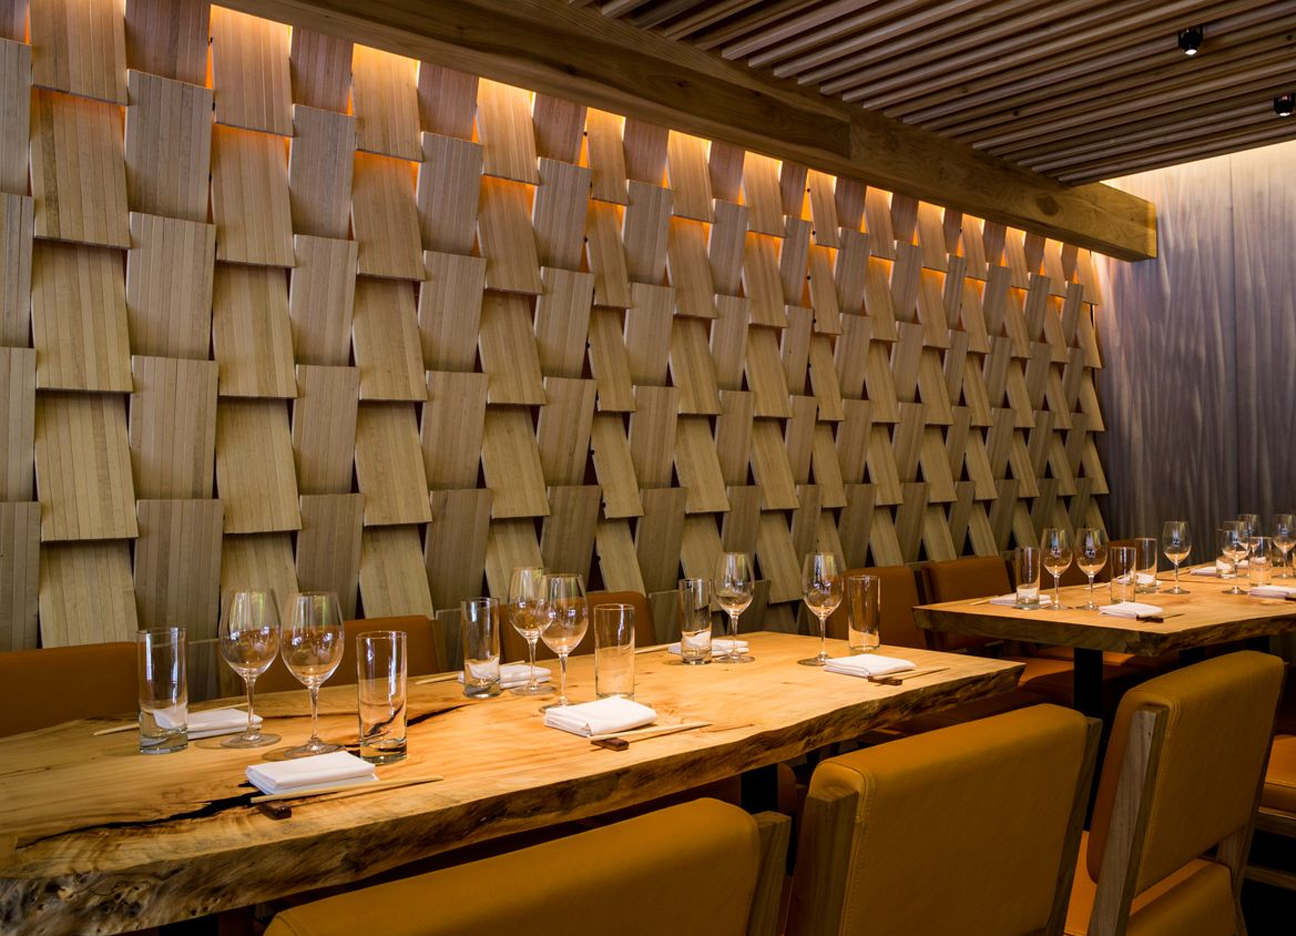 Private Dining Room  event space at Roka Akor in San Francisco, SF Bay Area, San Fran